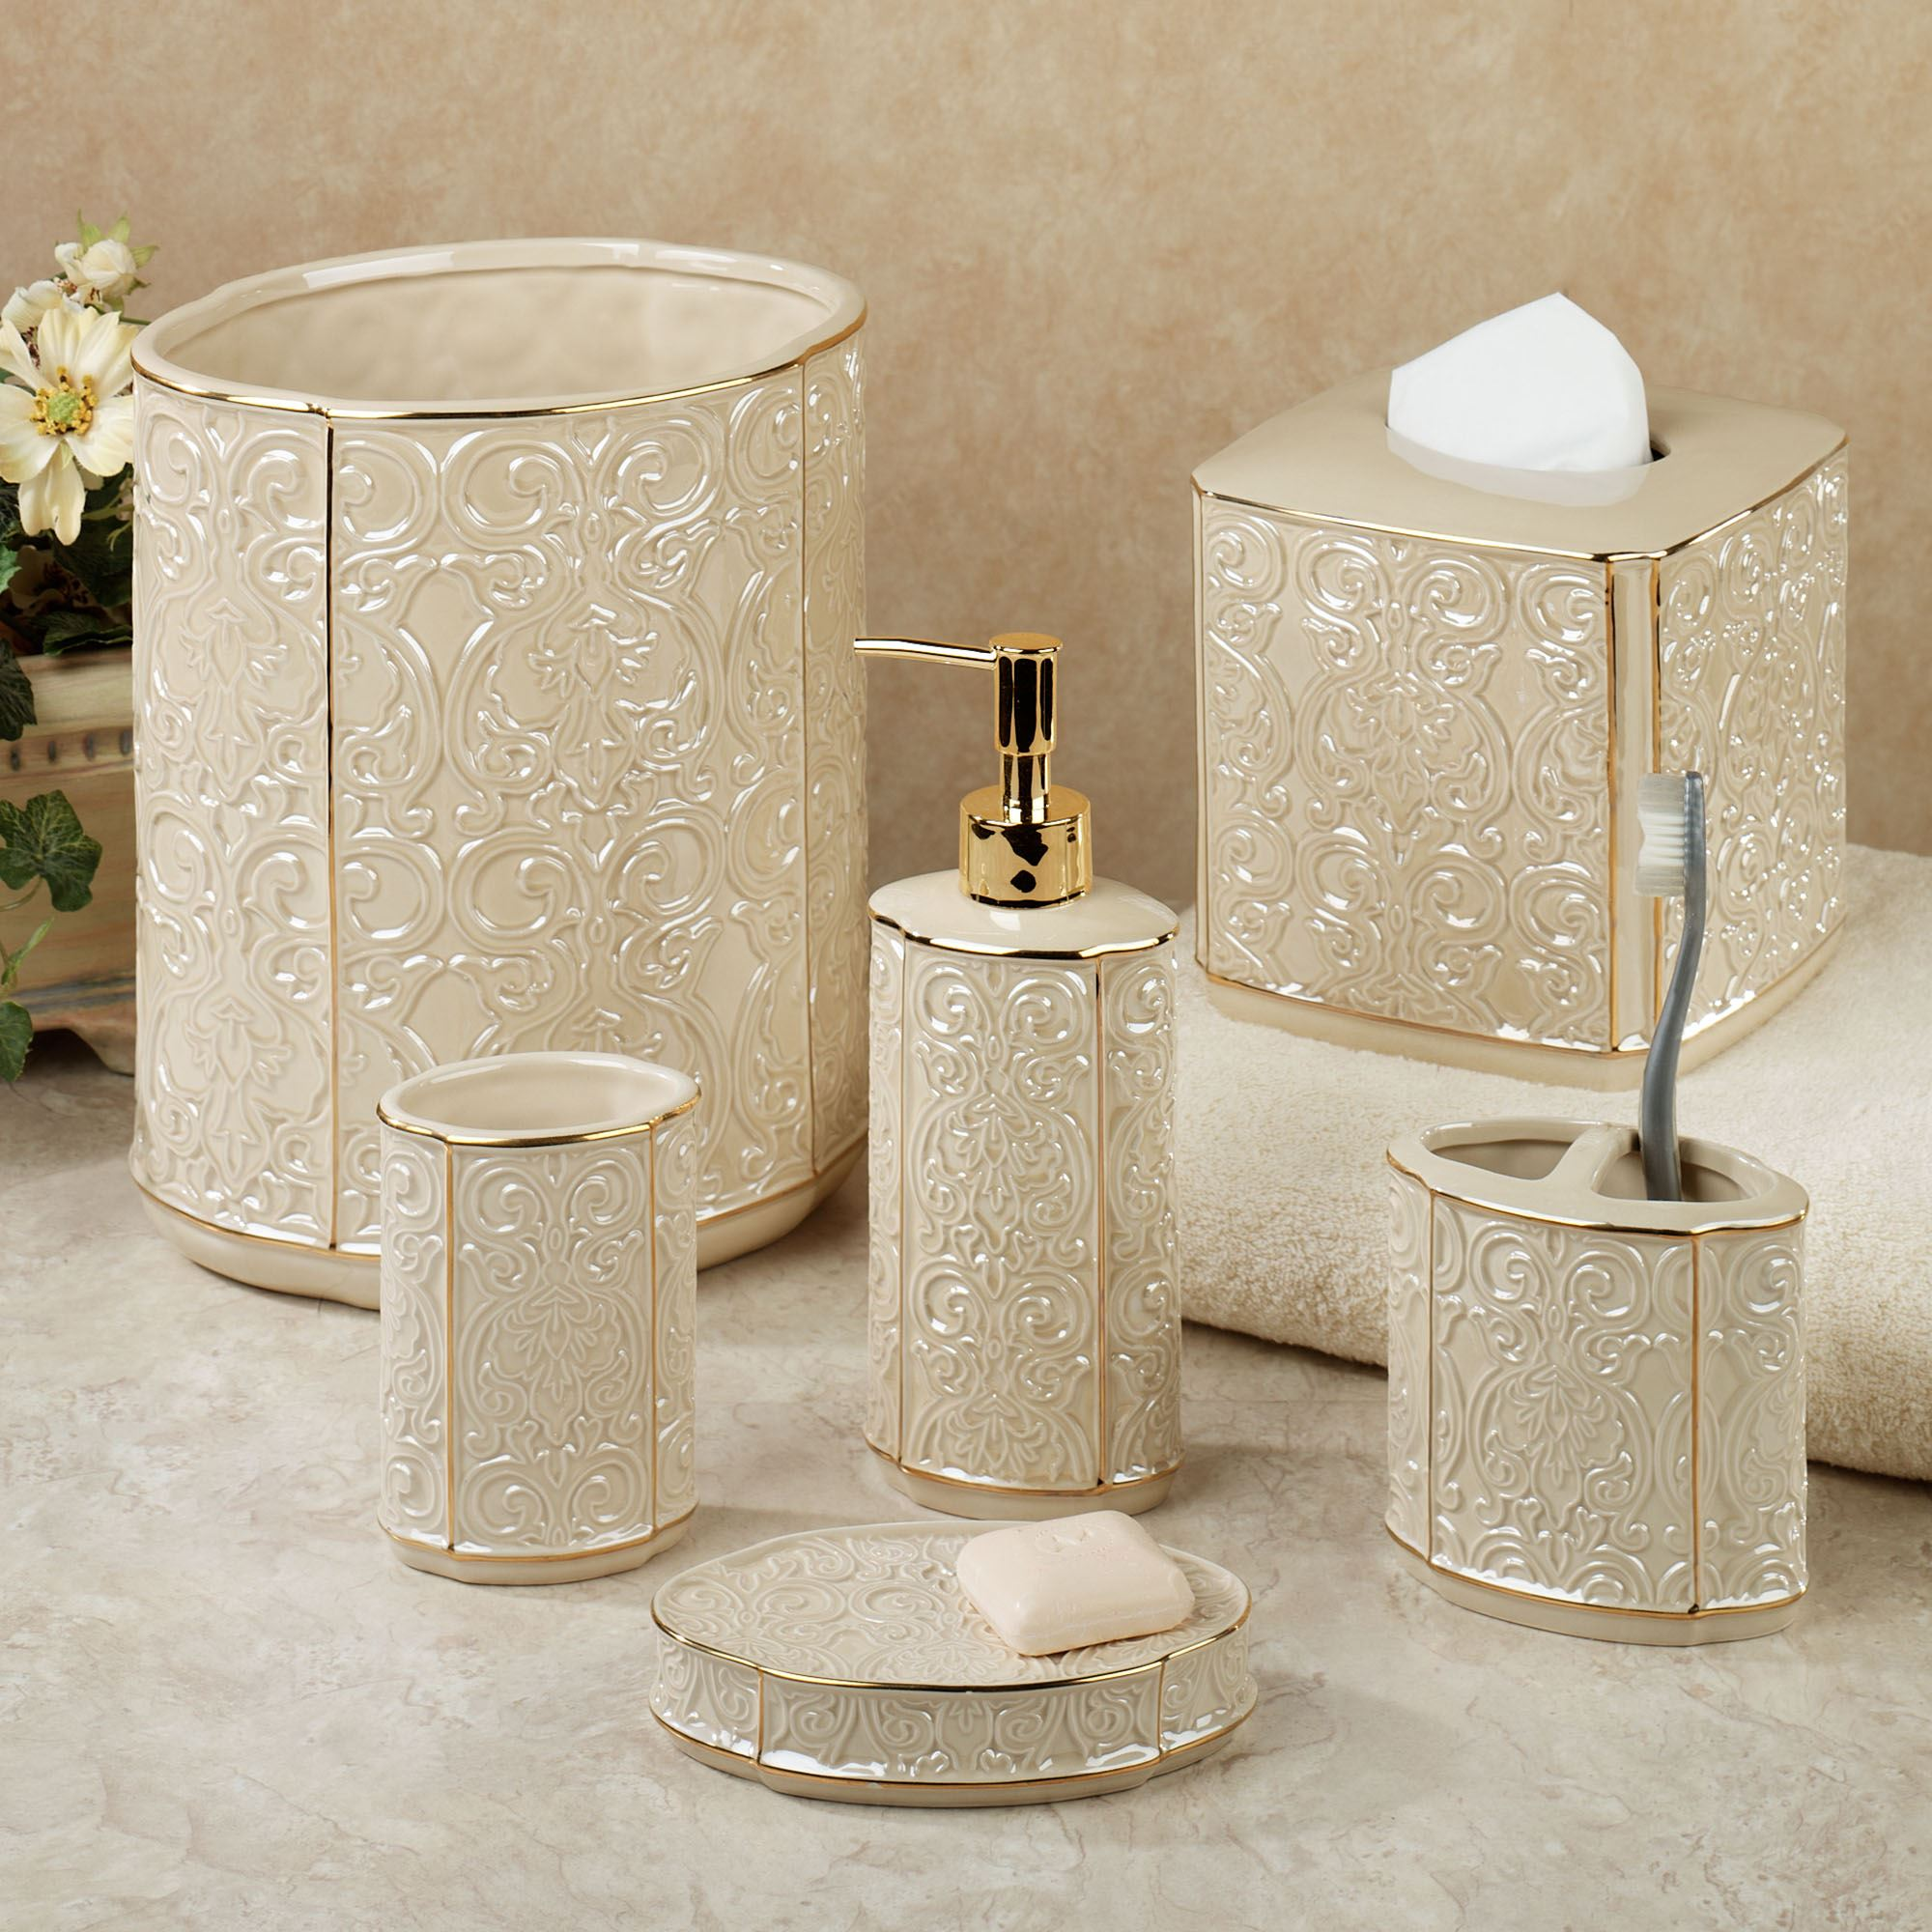 Furla cream damask ceramic bath accessories for Bathroom countertop accessories